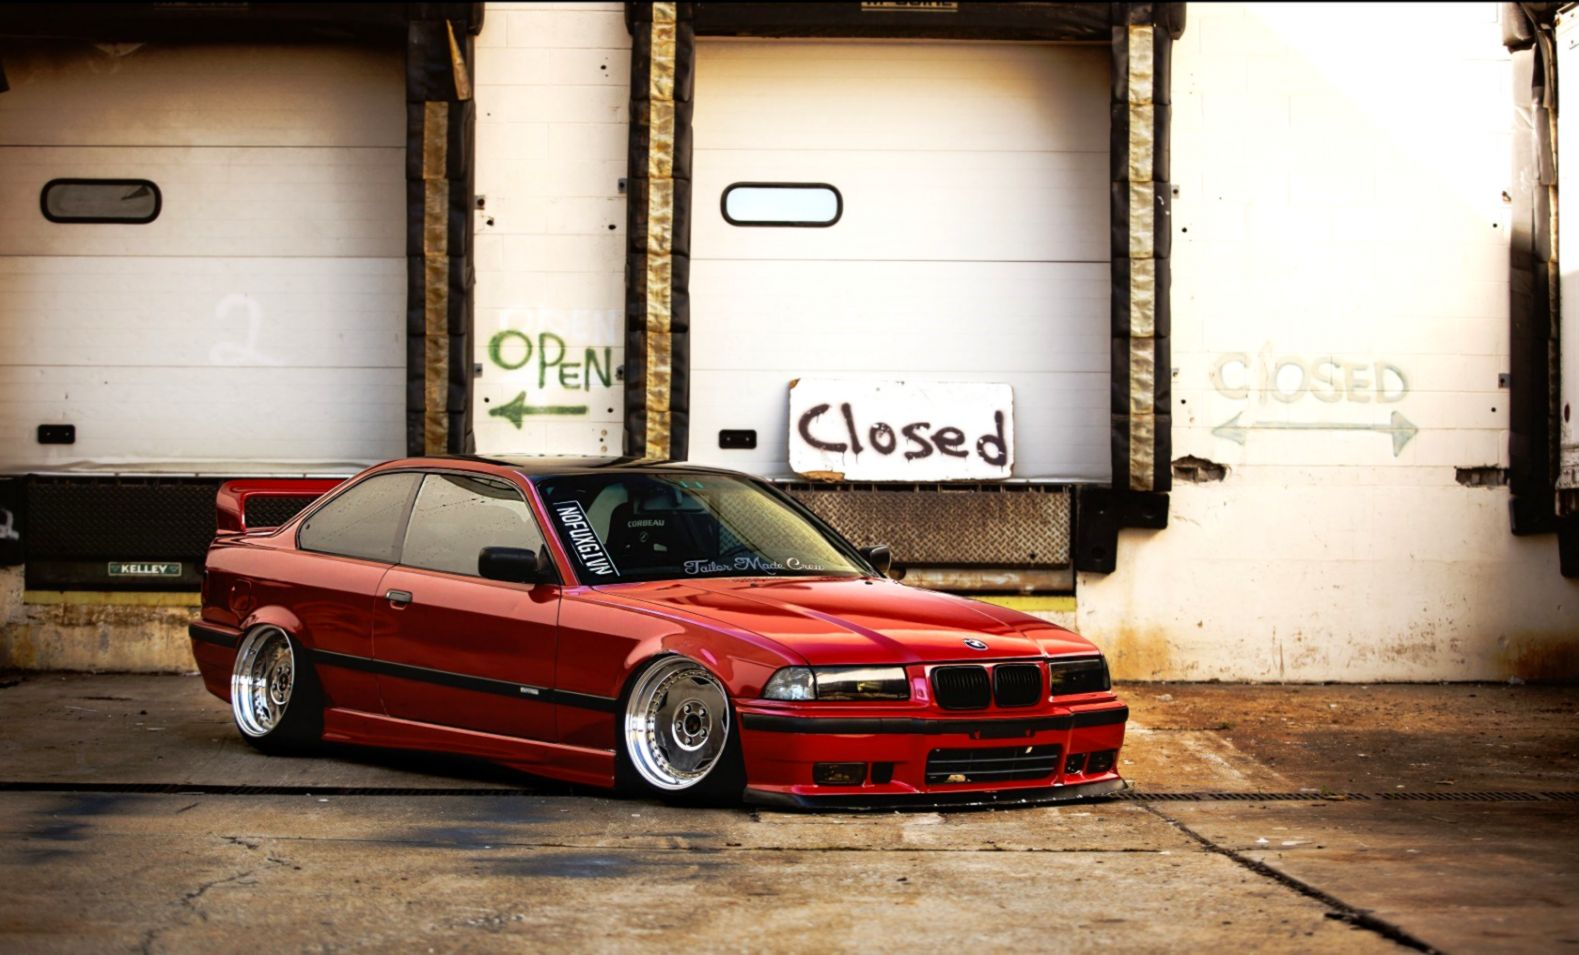 Bmw E36 Red Tuning Parking Bmw E36 Full Hd 1579x955 Wallpaper Teahub Io